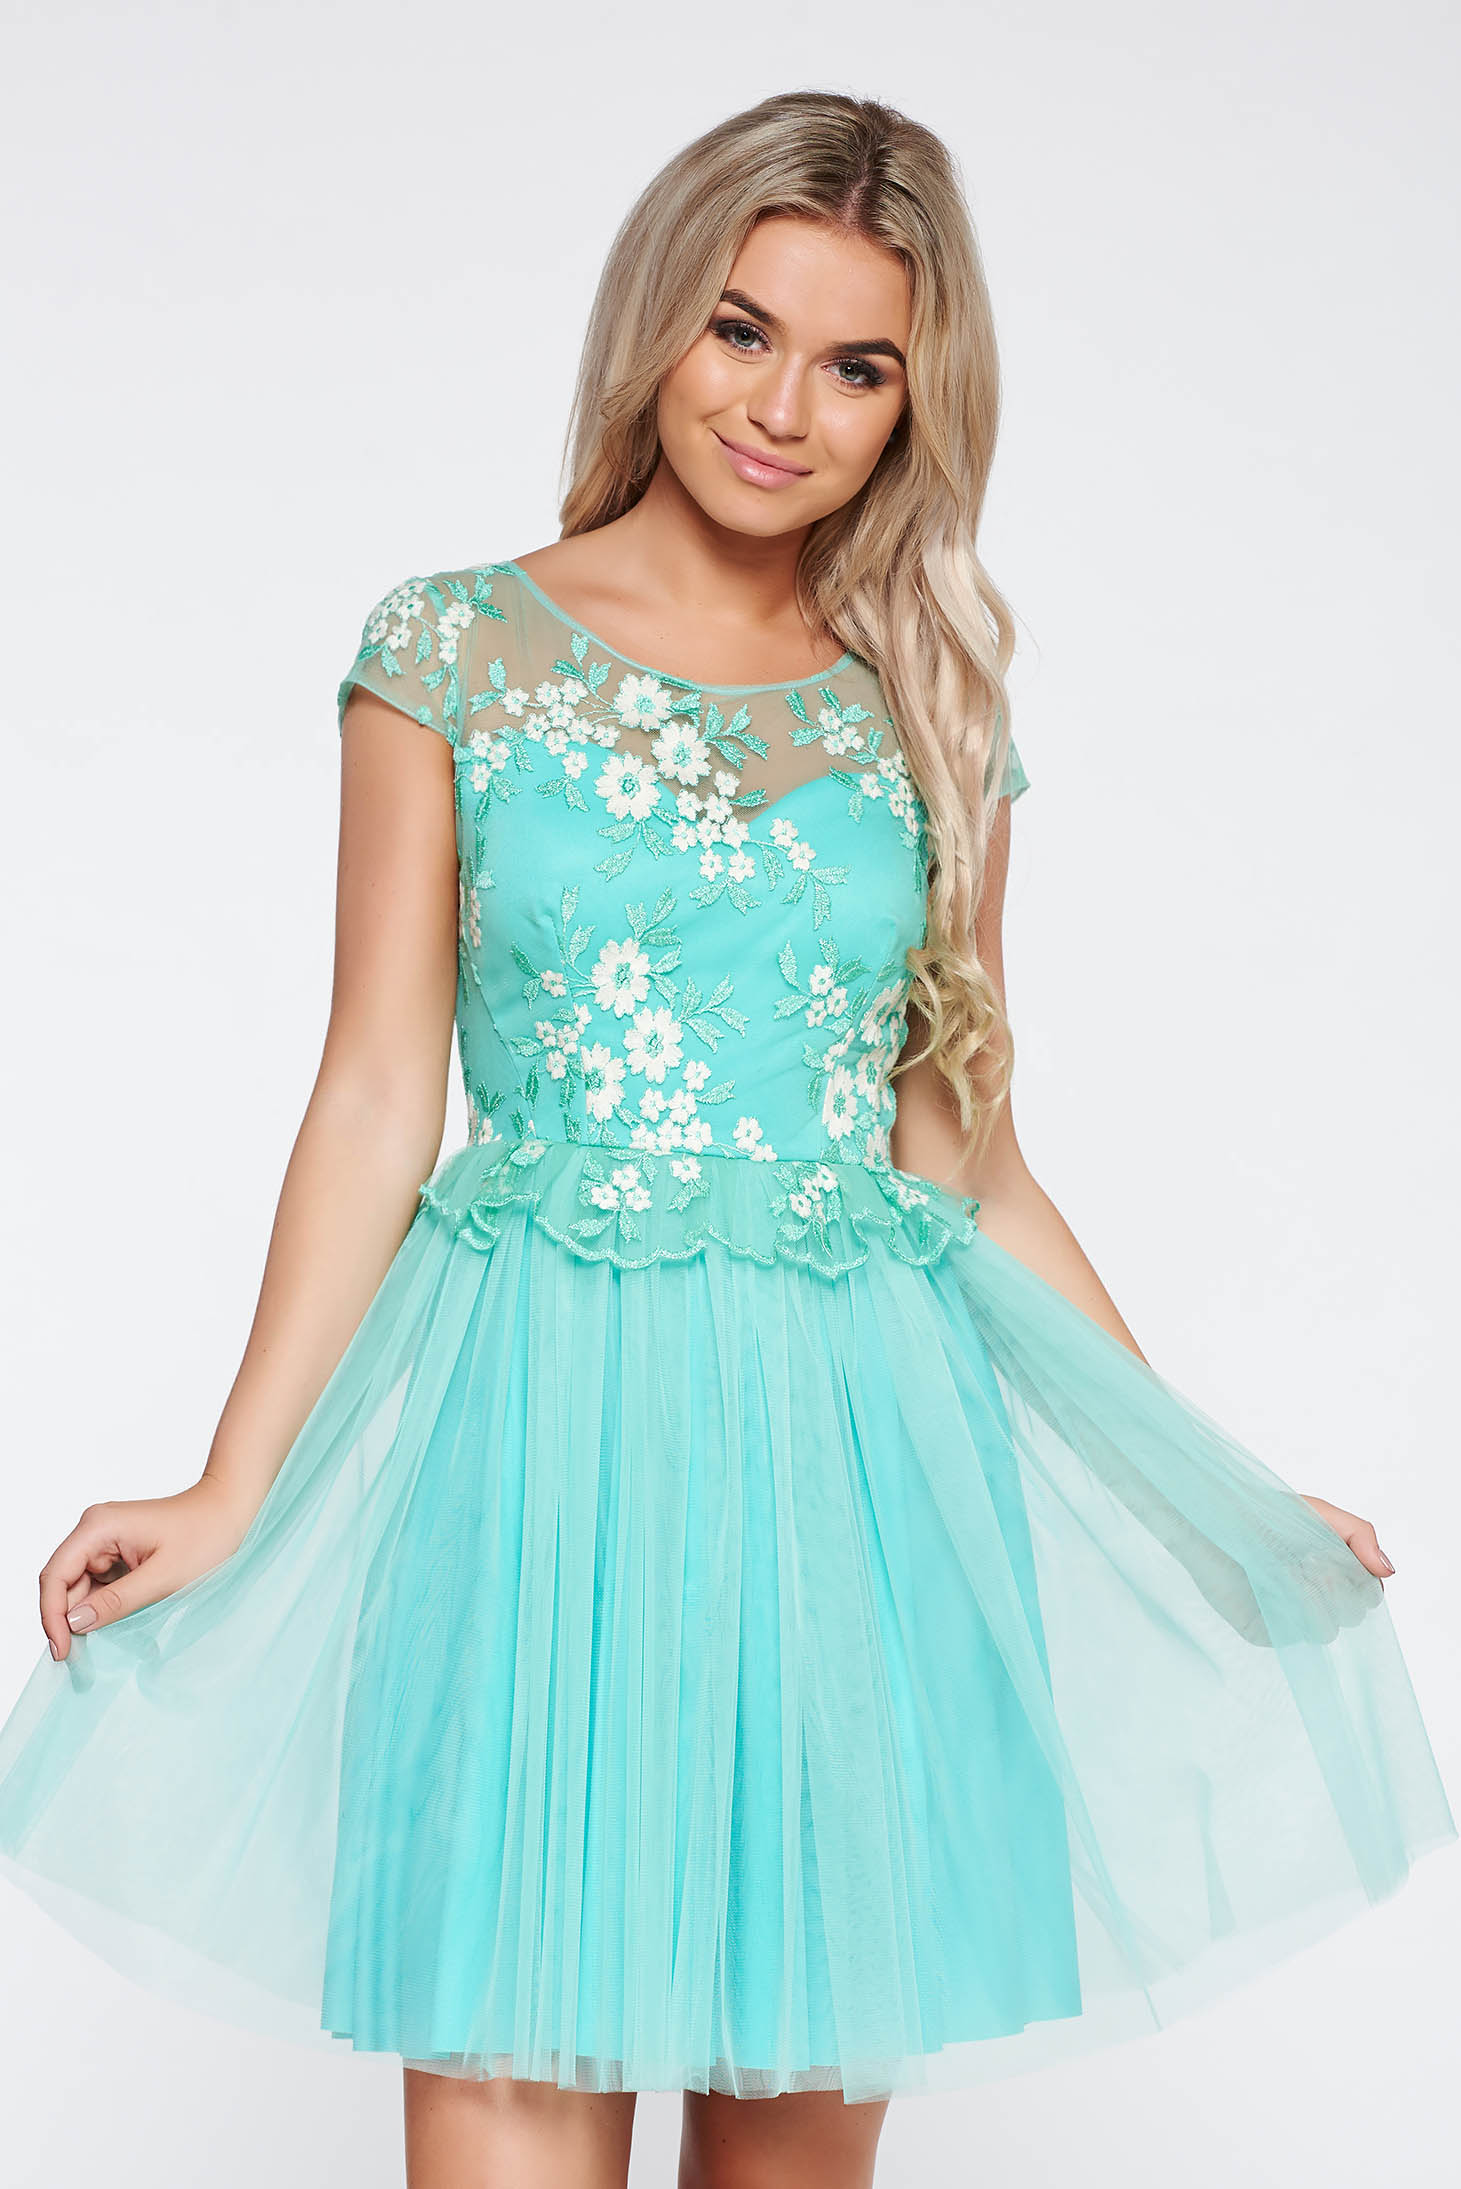 Mint occasional cloche dress from tulle with inside lining with embroidery details